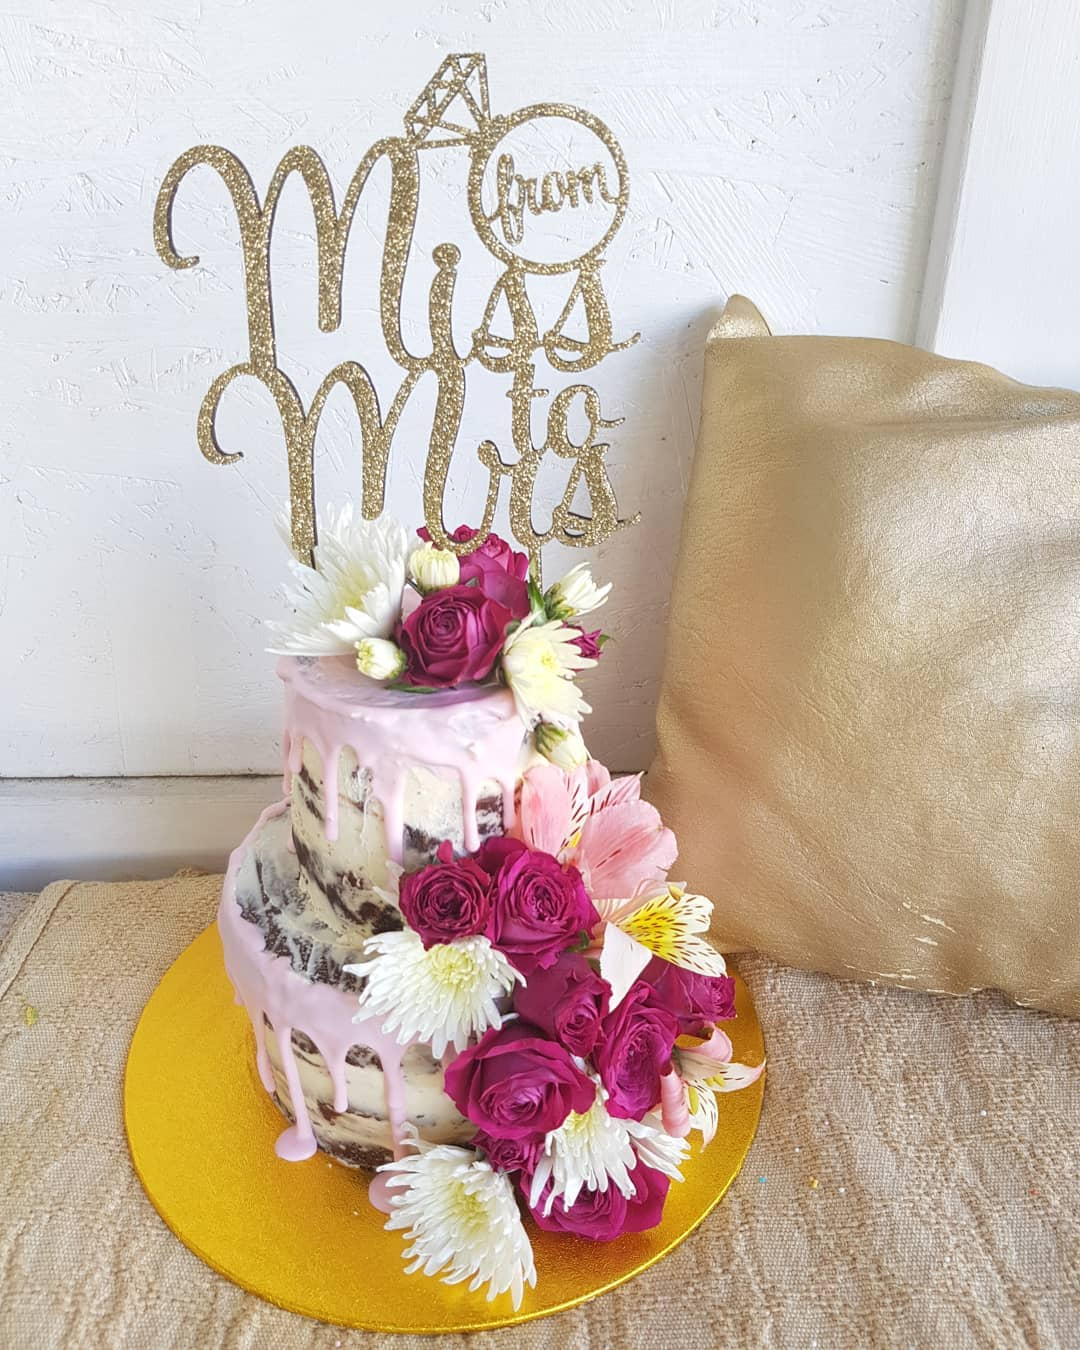 bride-to-be cake